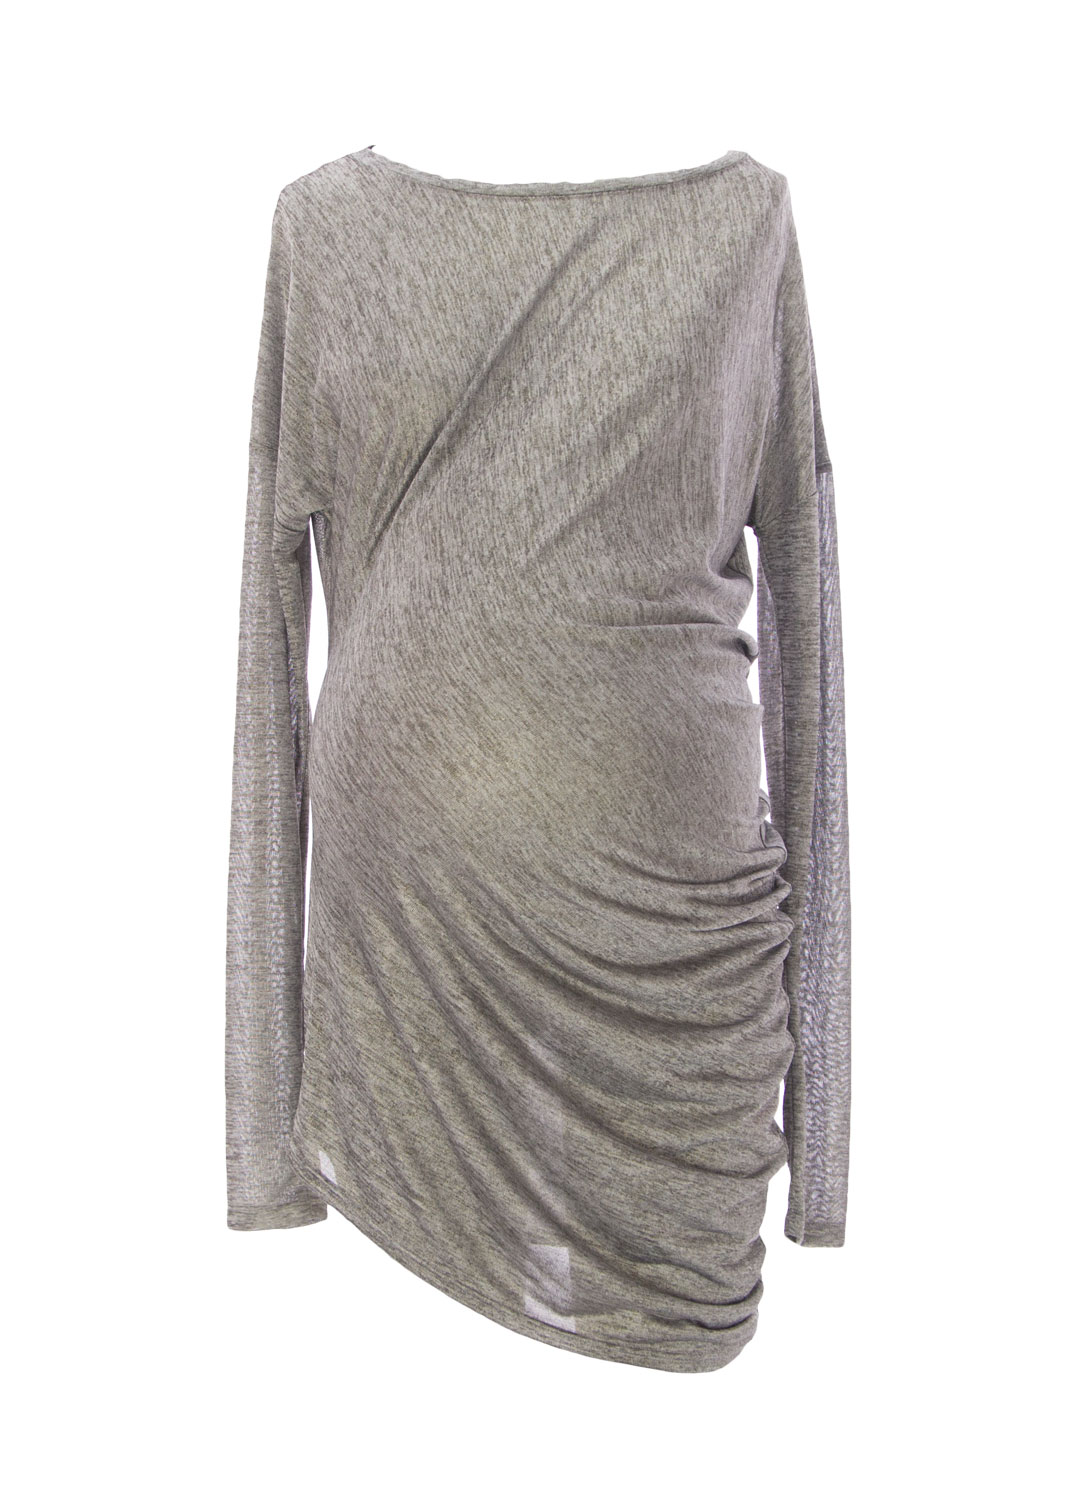 9FASHION Maternity Women's Gwen Asymmetrical Tunic, Small, Metallic